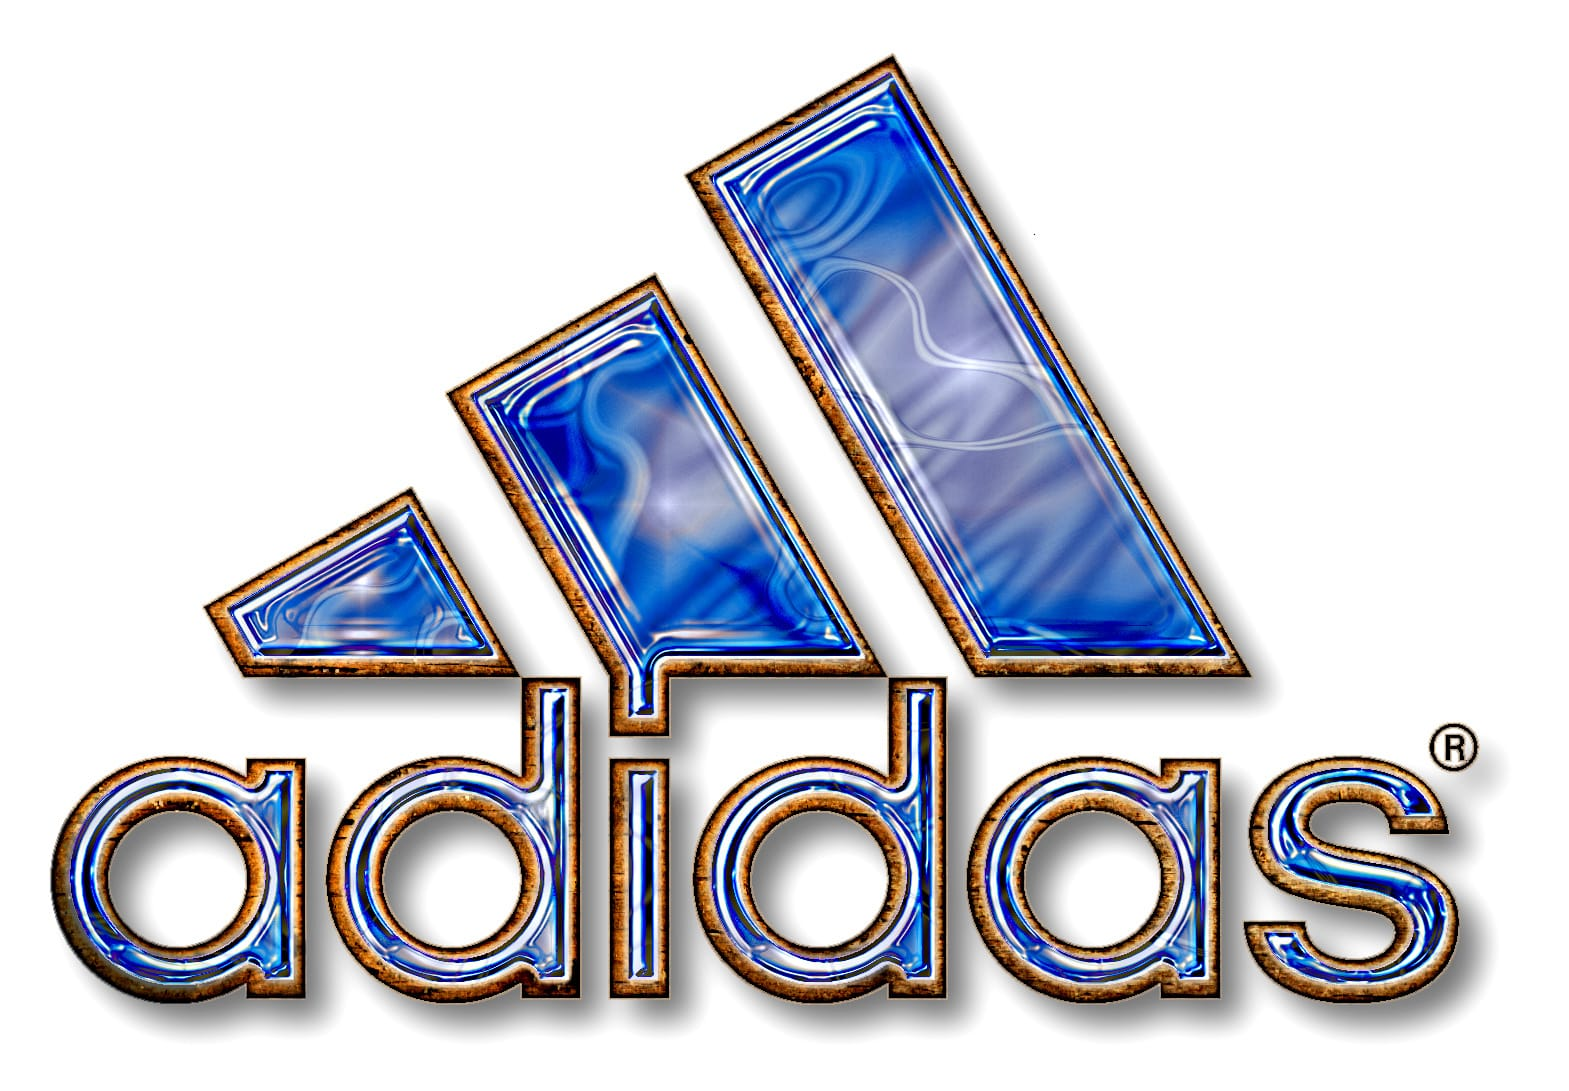 Graphic Design & Illustration – Adidas